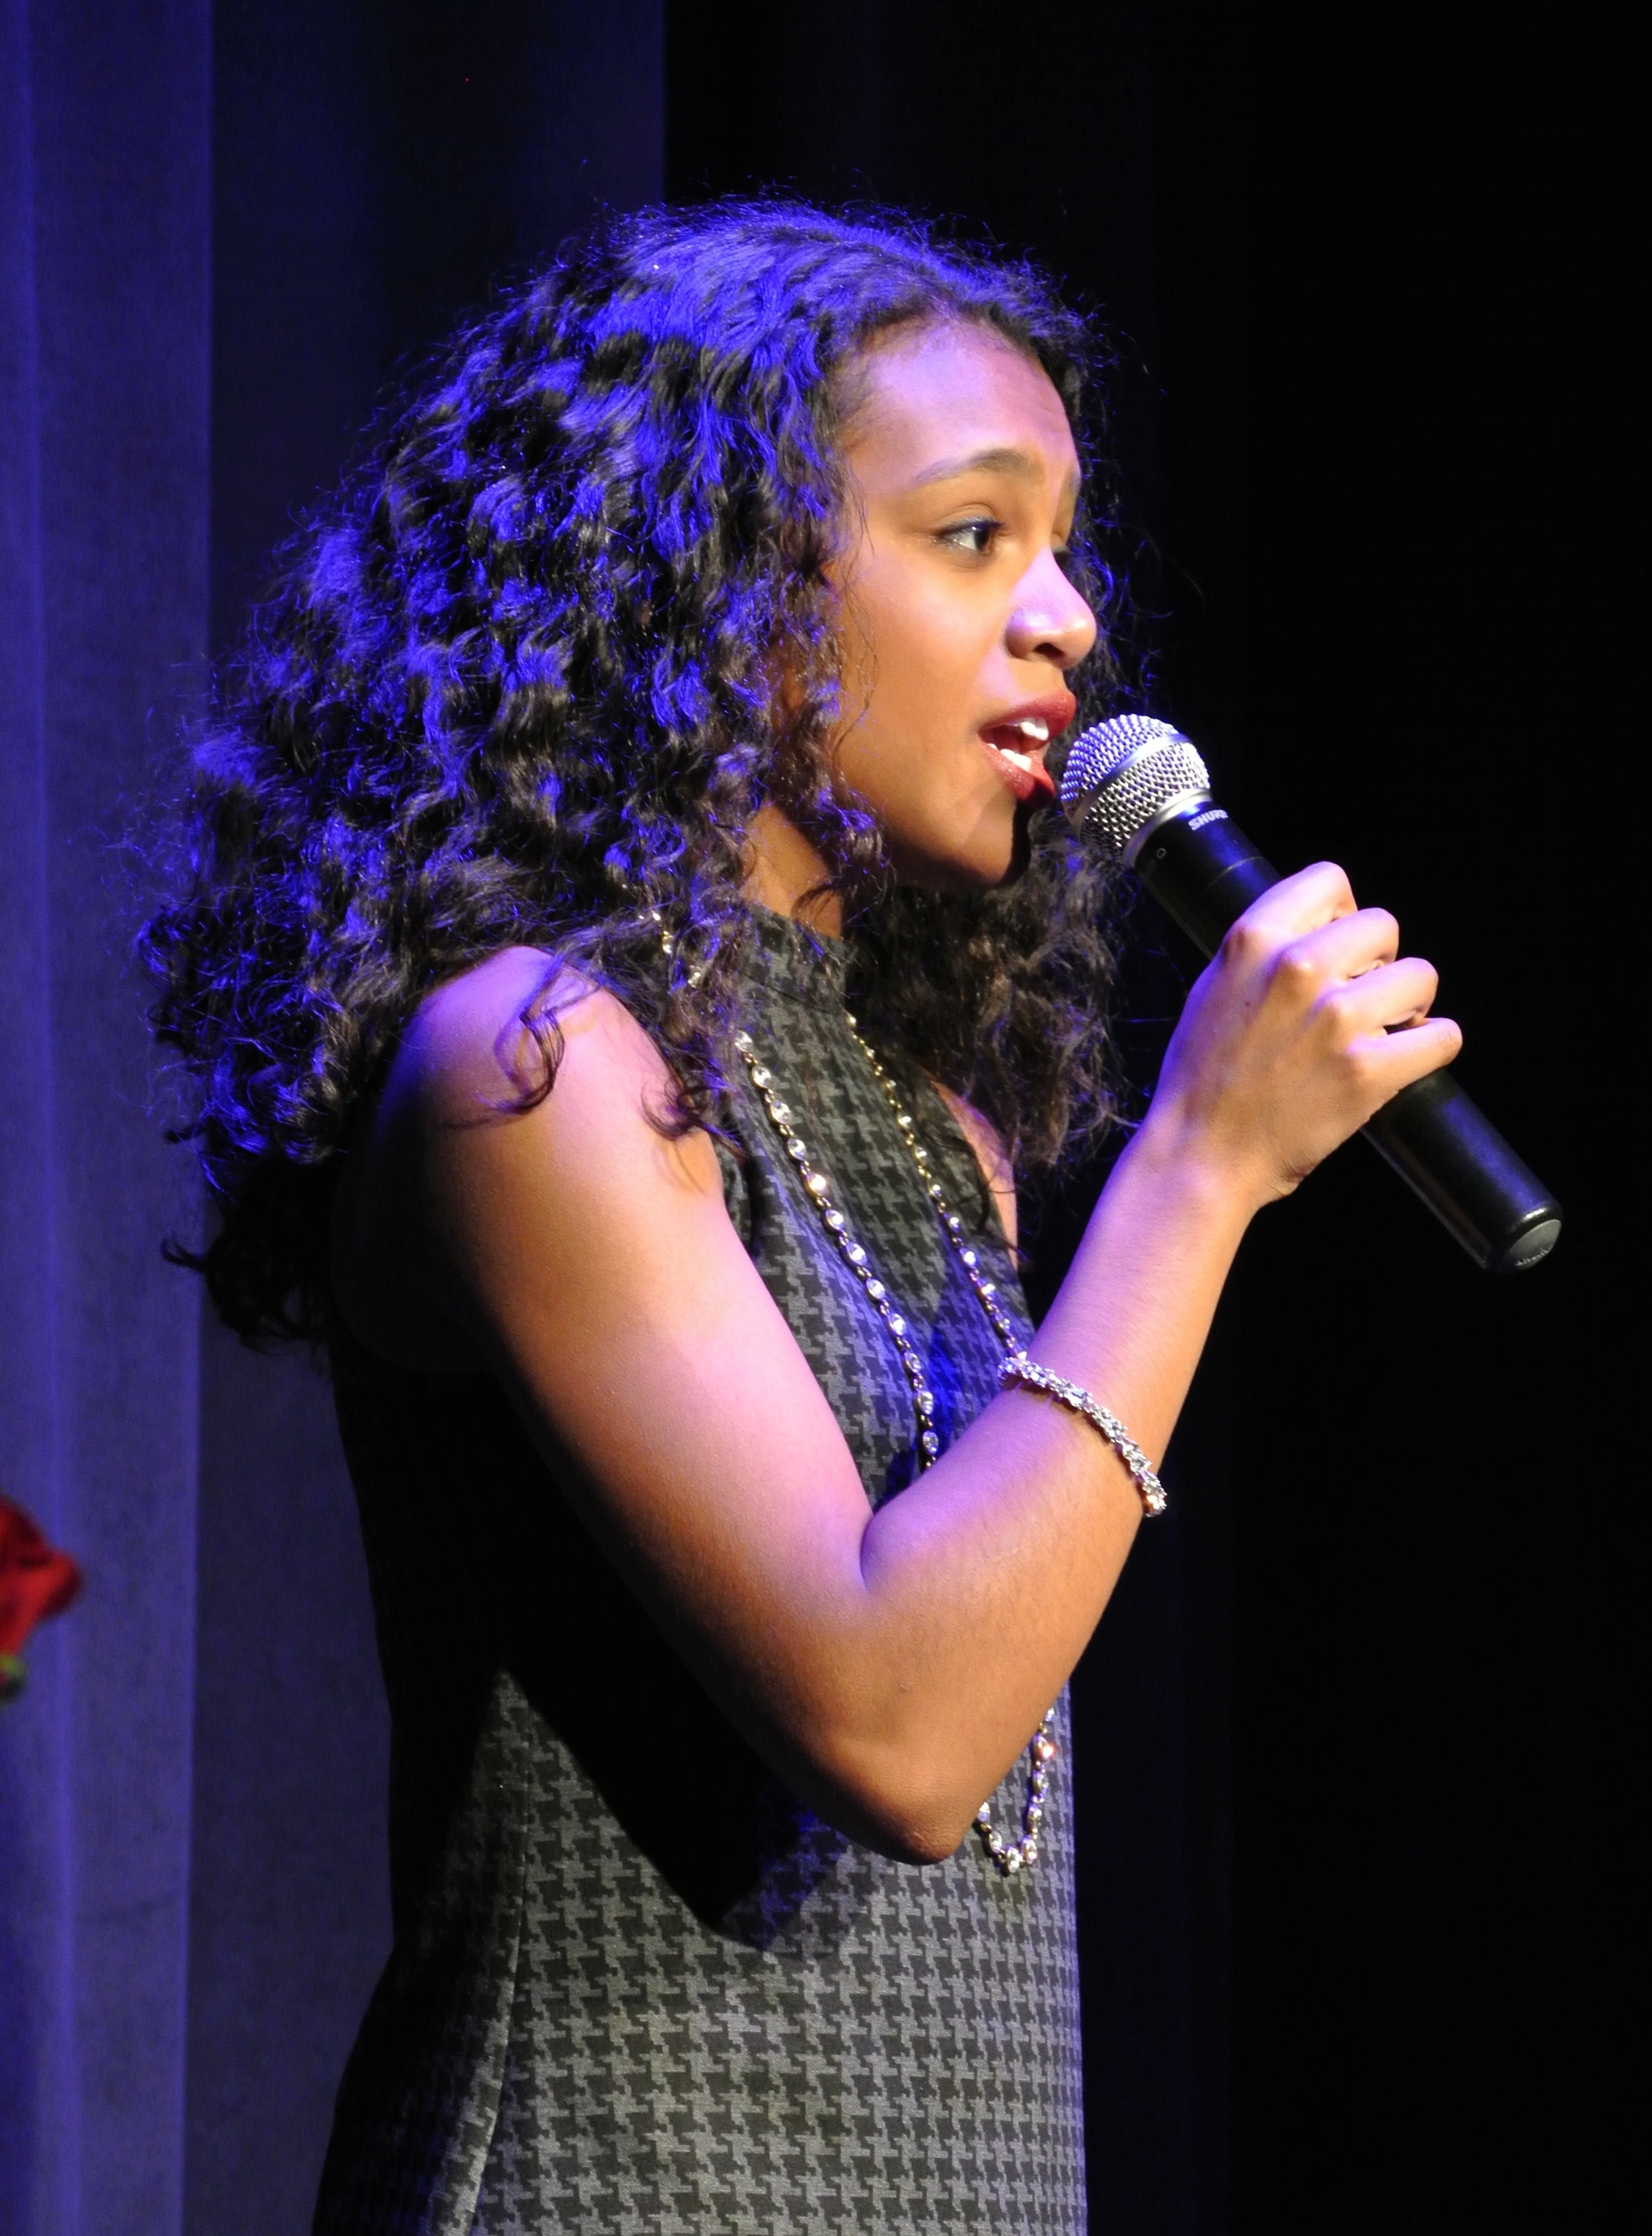 Voice student Yolanda performs at the 2016 Vocal Cabaret.